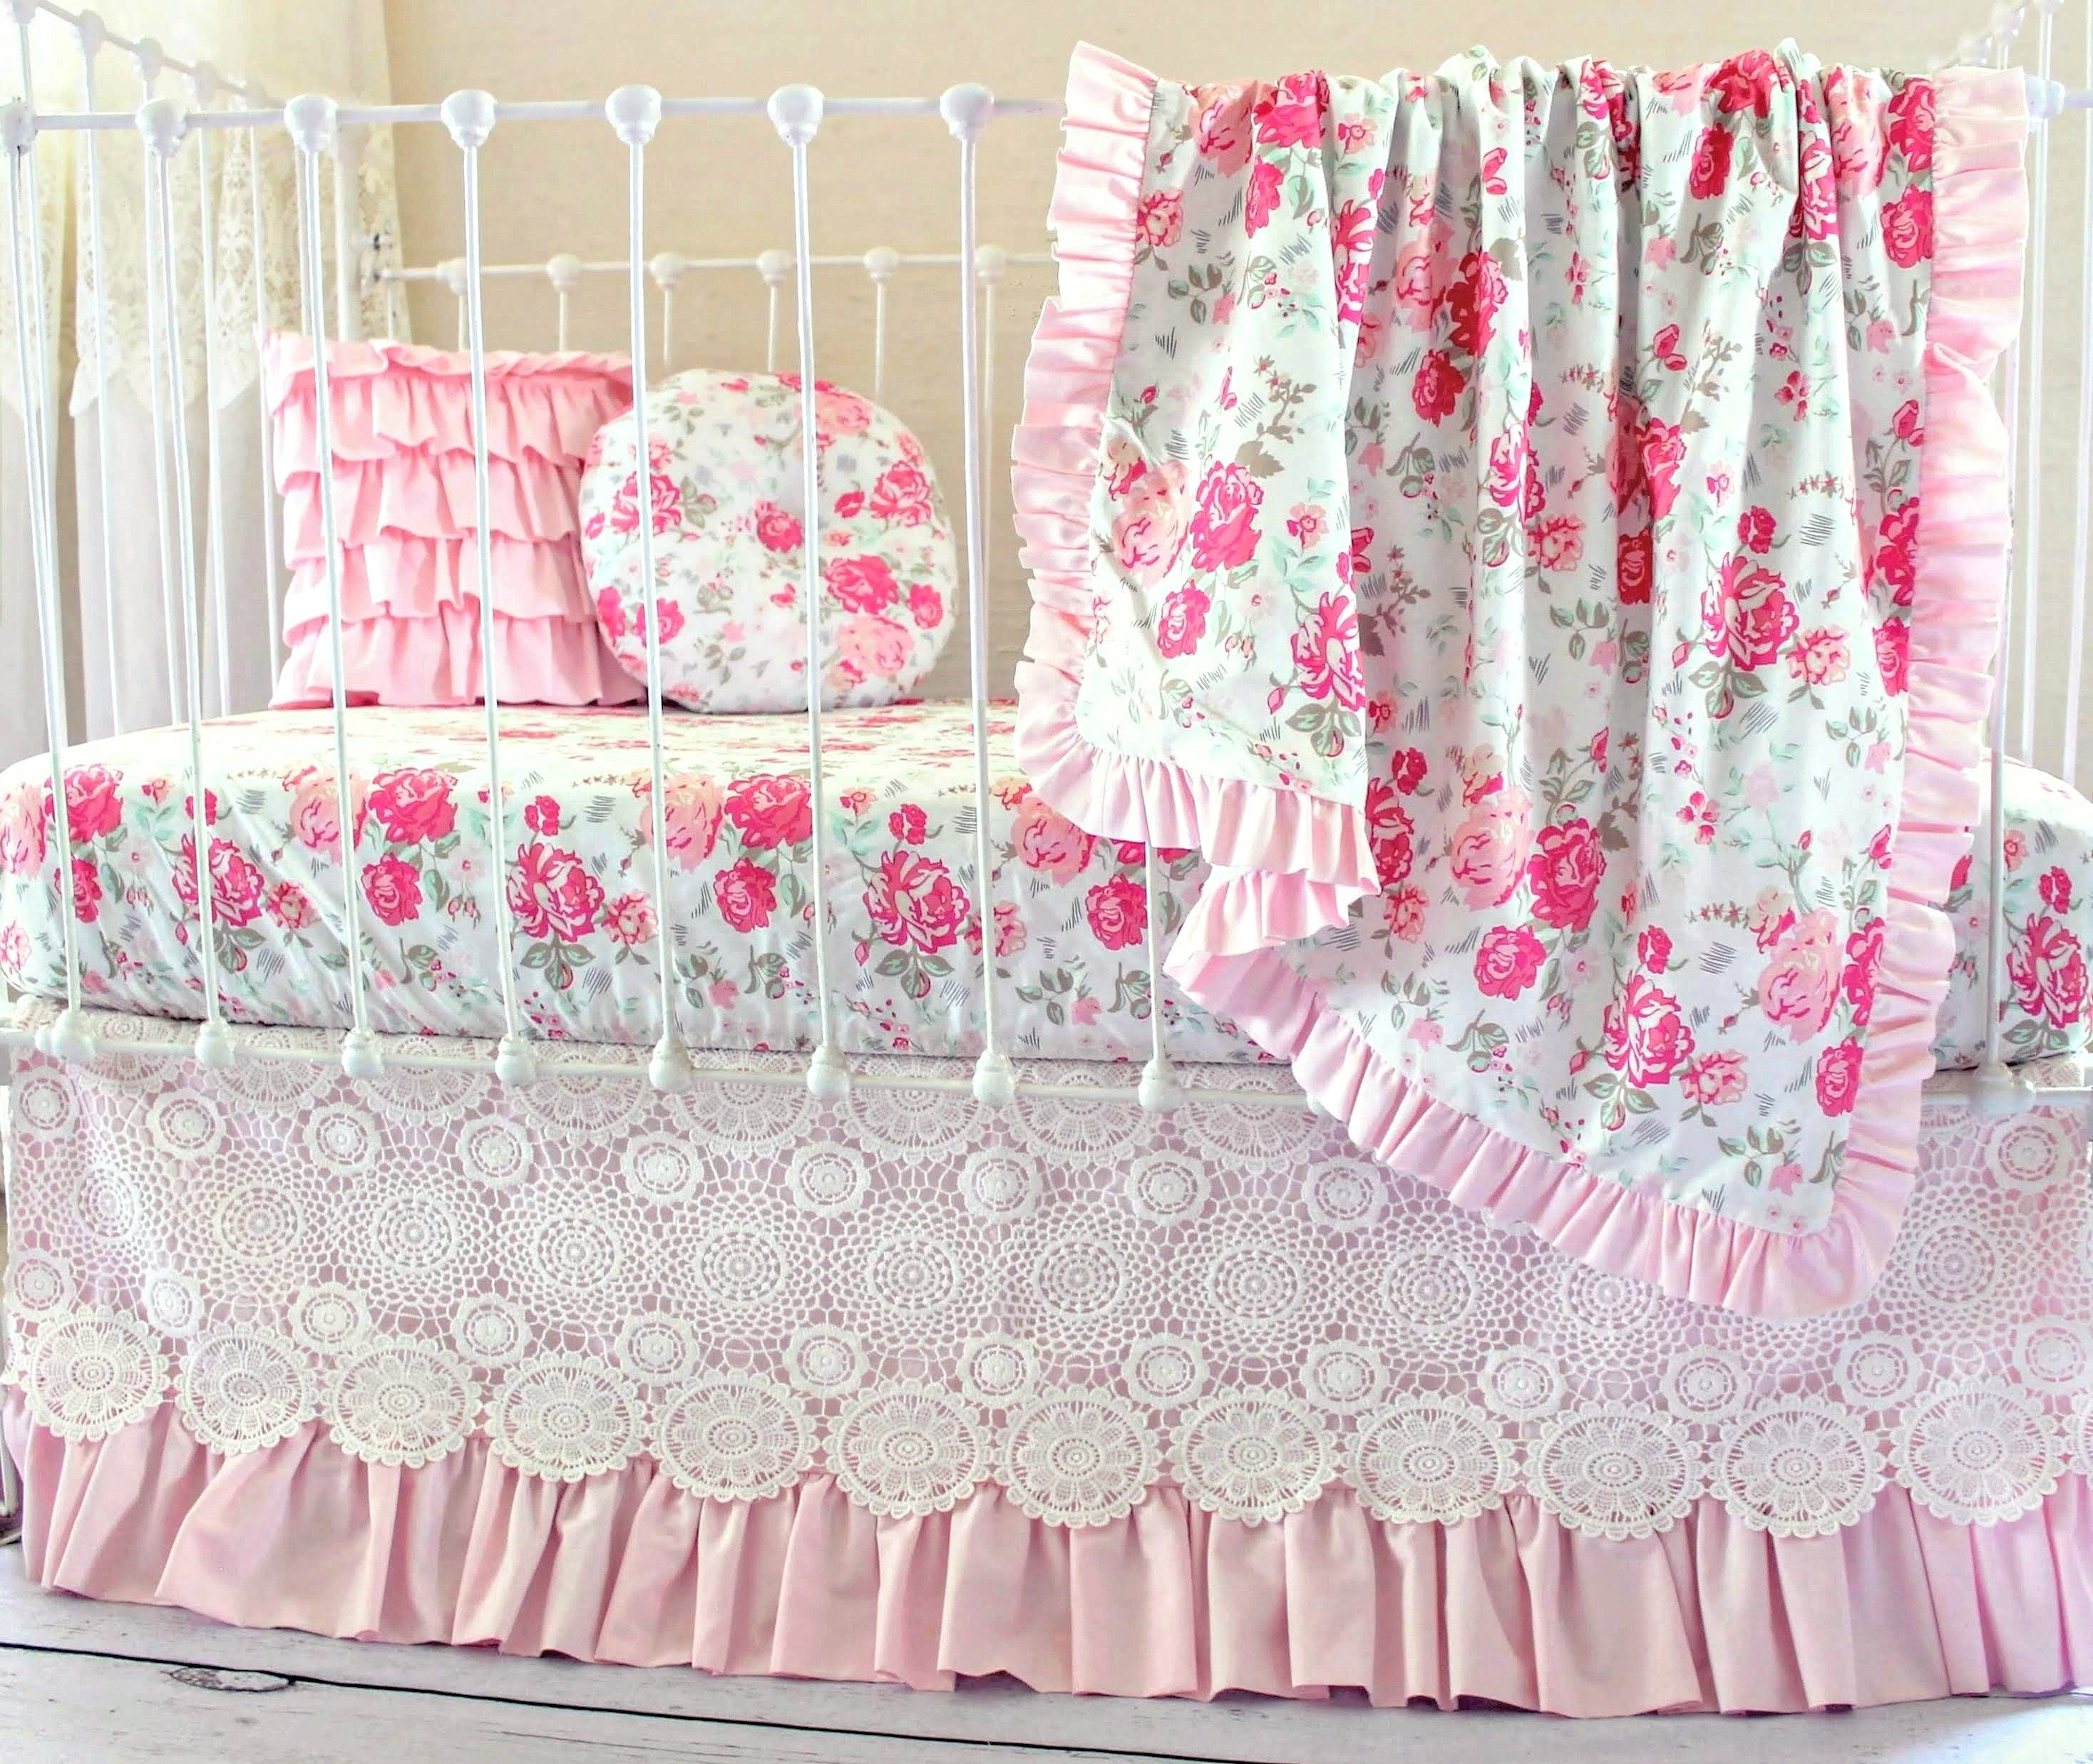 Vintage Chic Roses Baby Girl Bedding Pink And White Floral | Etsy